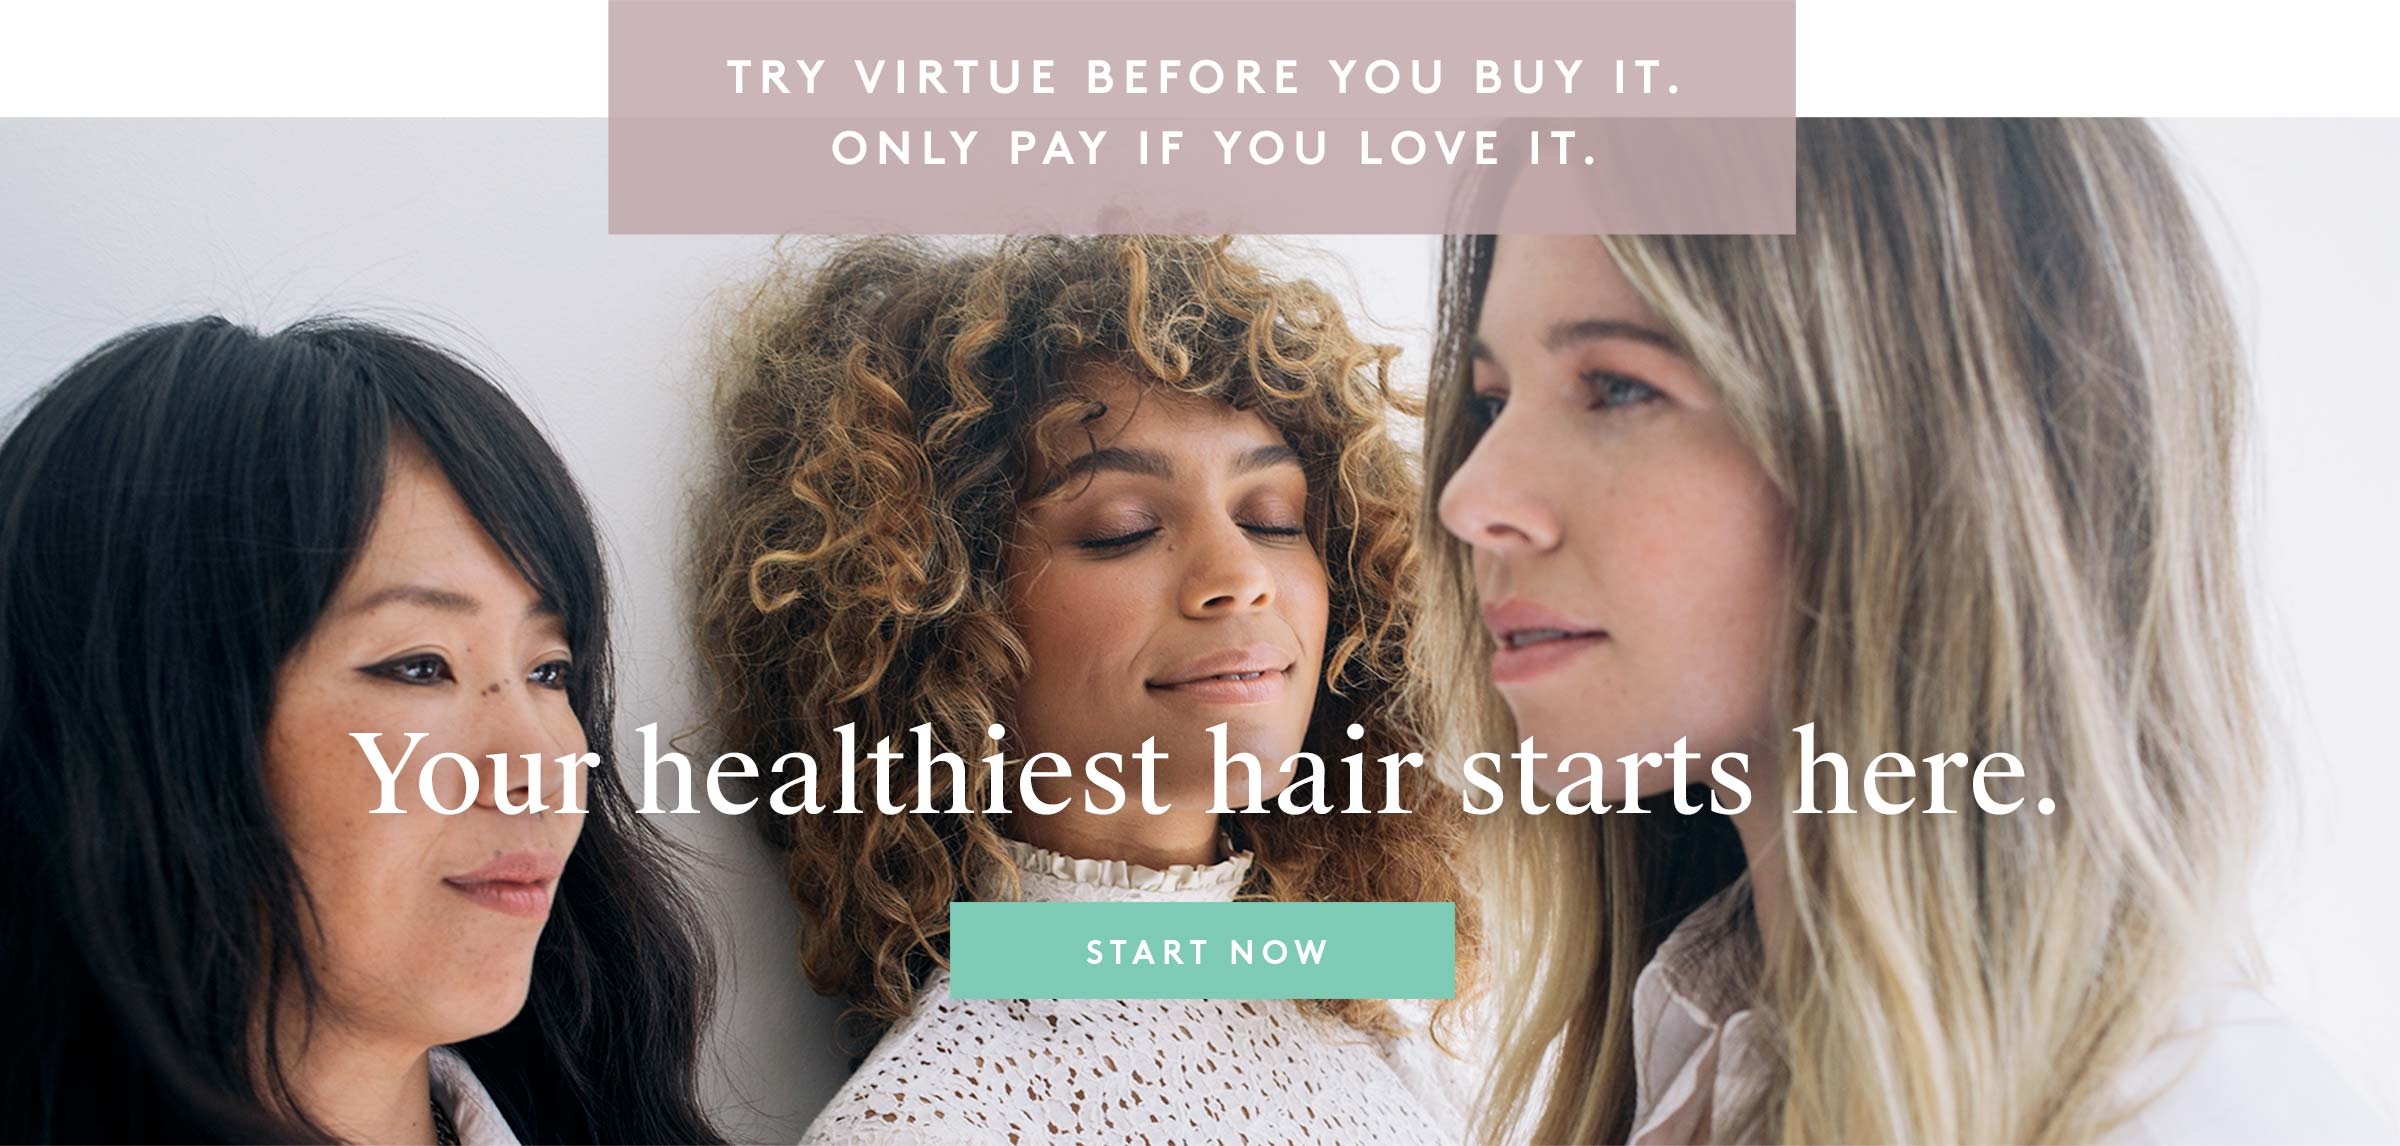 Your healthiest hair starts here.